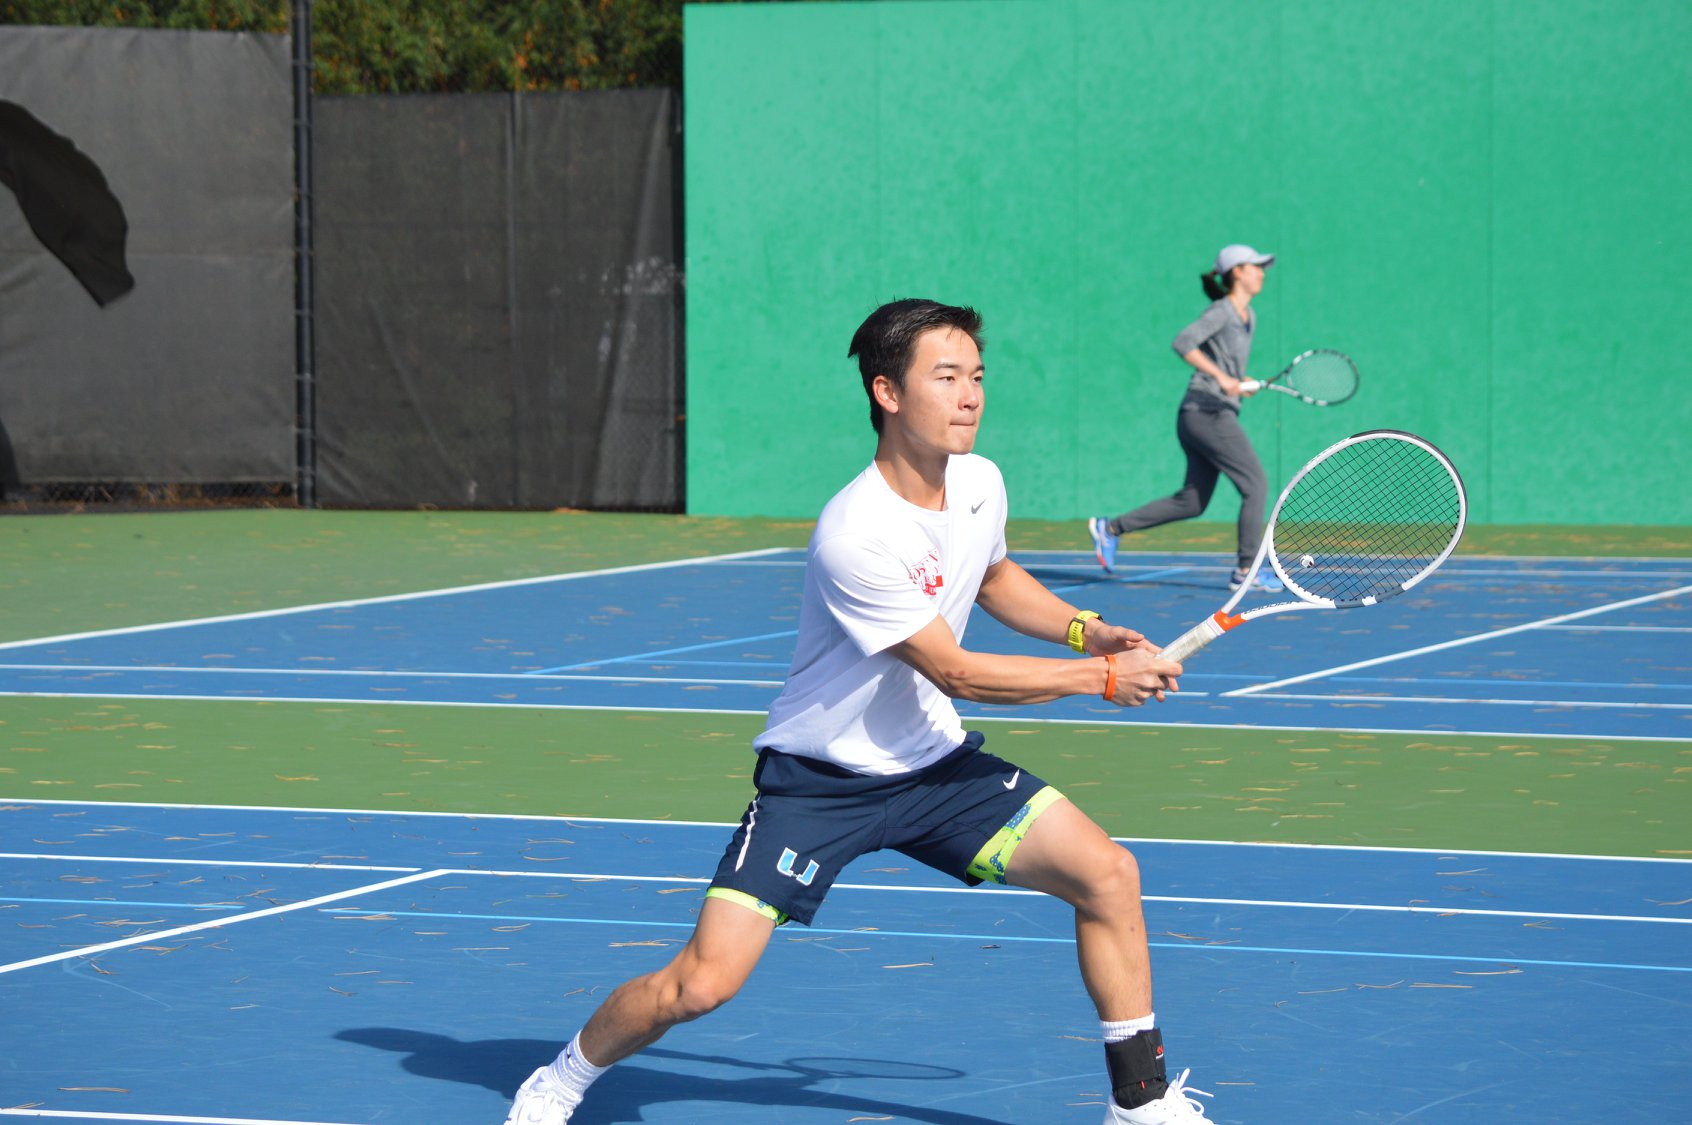 2020 Usta New England Sectional Events.Usta New England Tennis On Campus Series